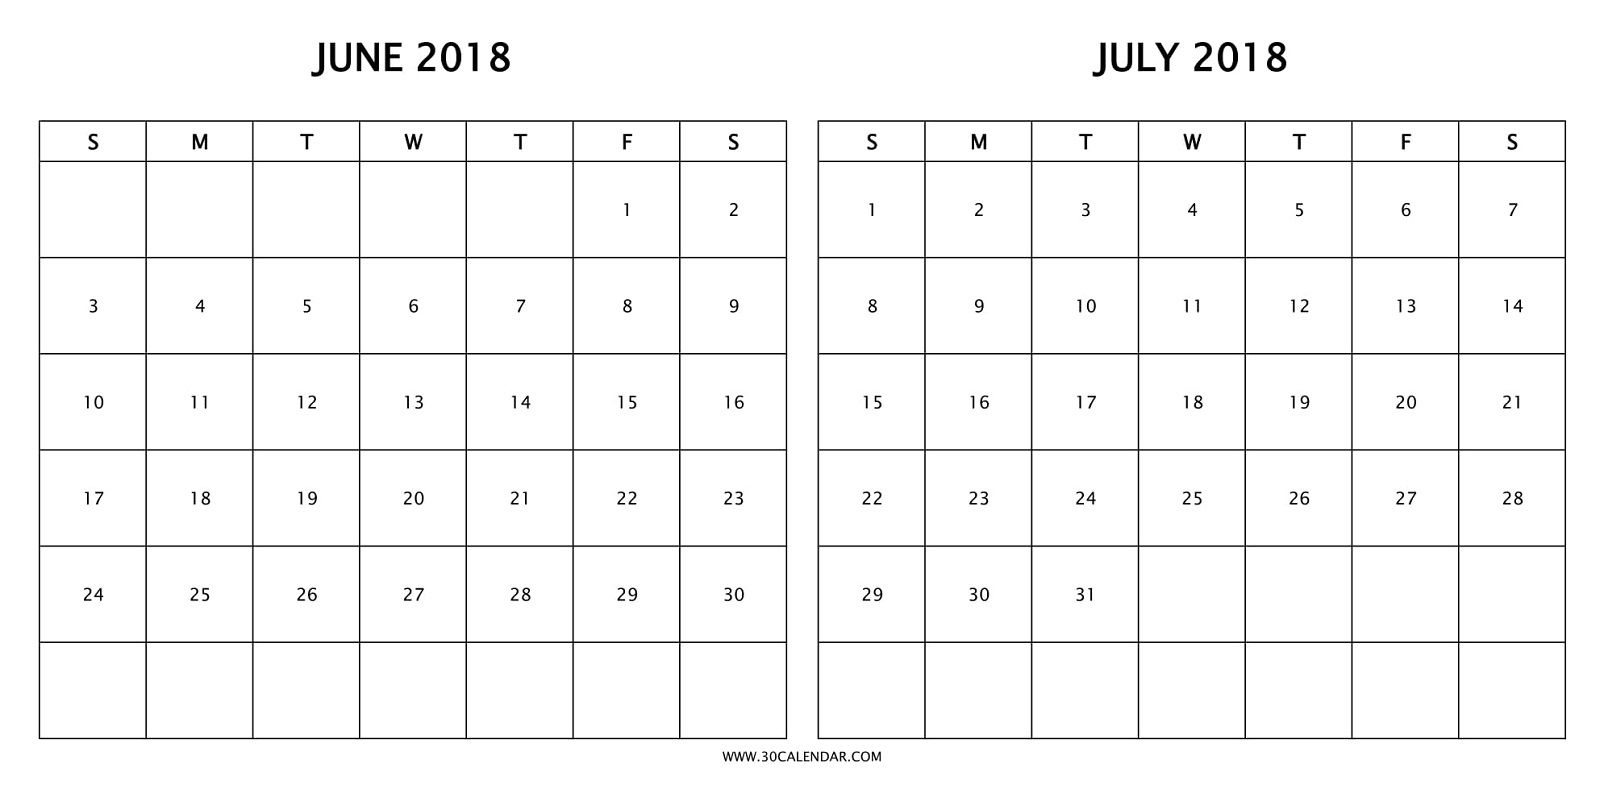 Print Free Two Month Calendar 2018 June July With Holidays | 2018 with regard to Calendar For June July